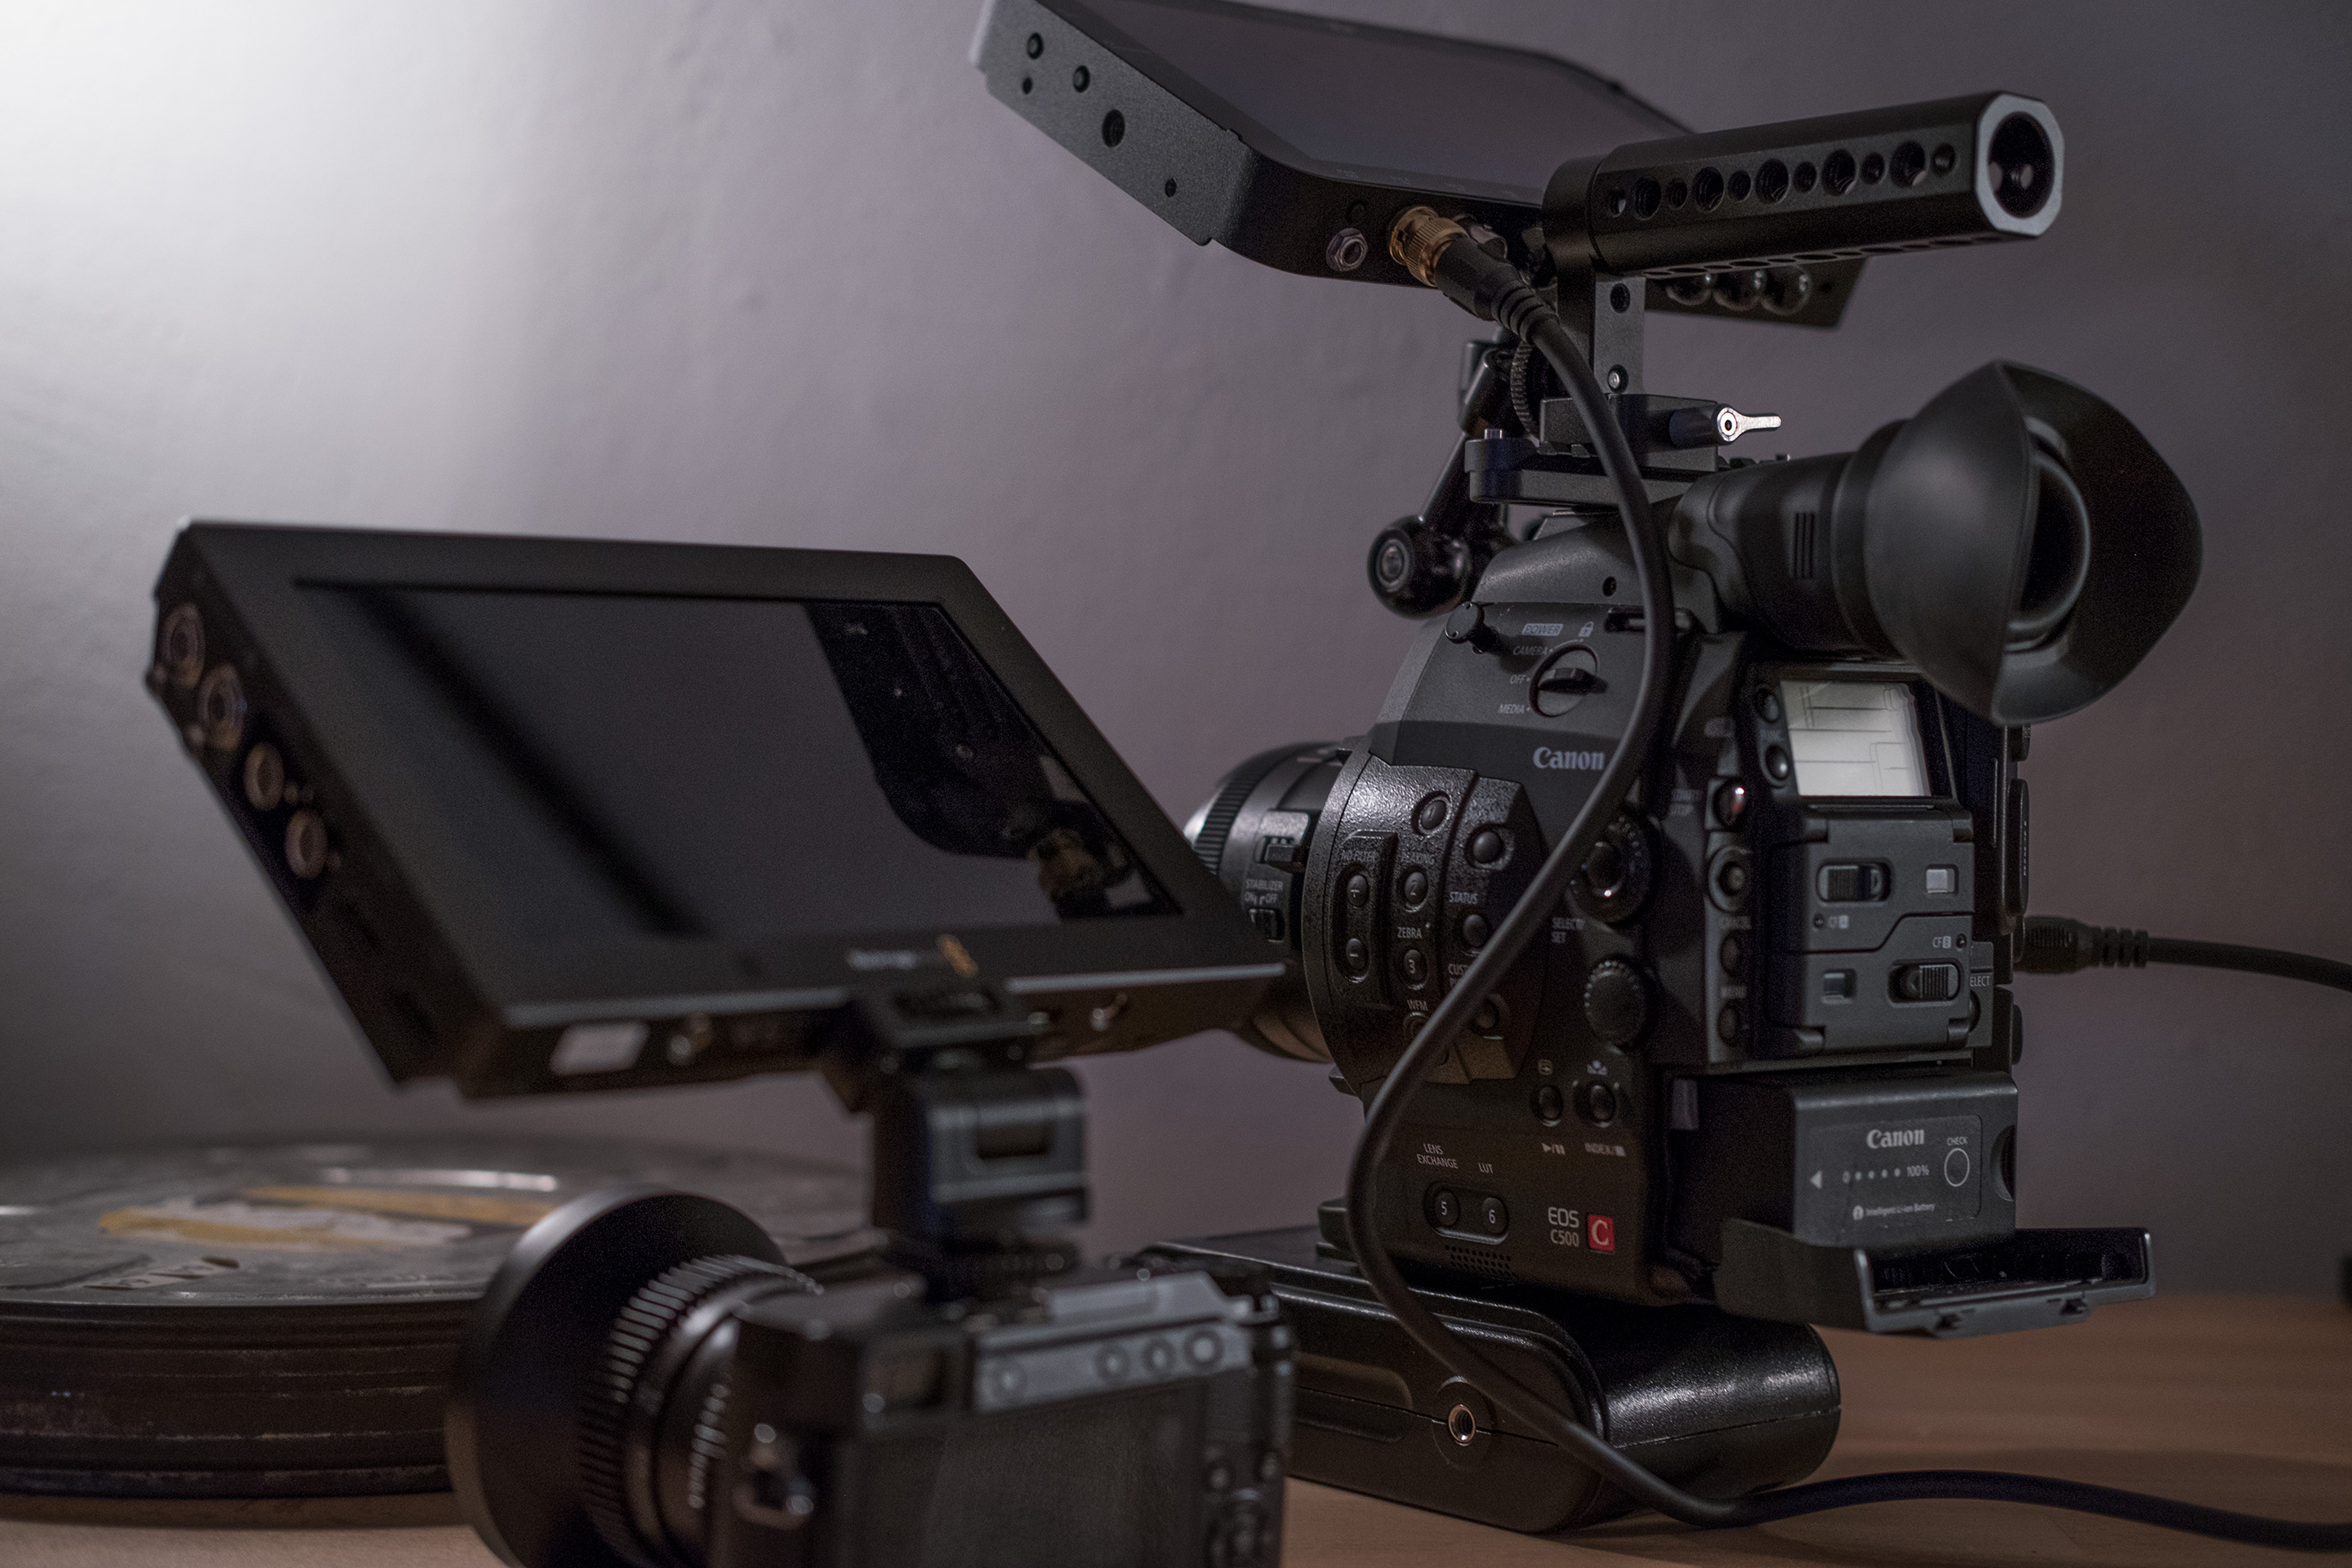 Shootout - Blackmagic Video Assist 4K vs Convergent Design Odyssey